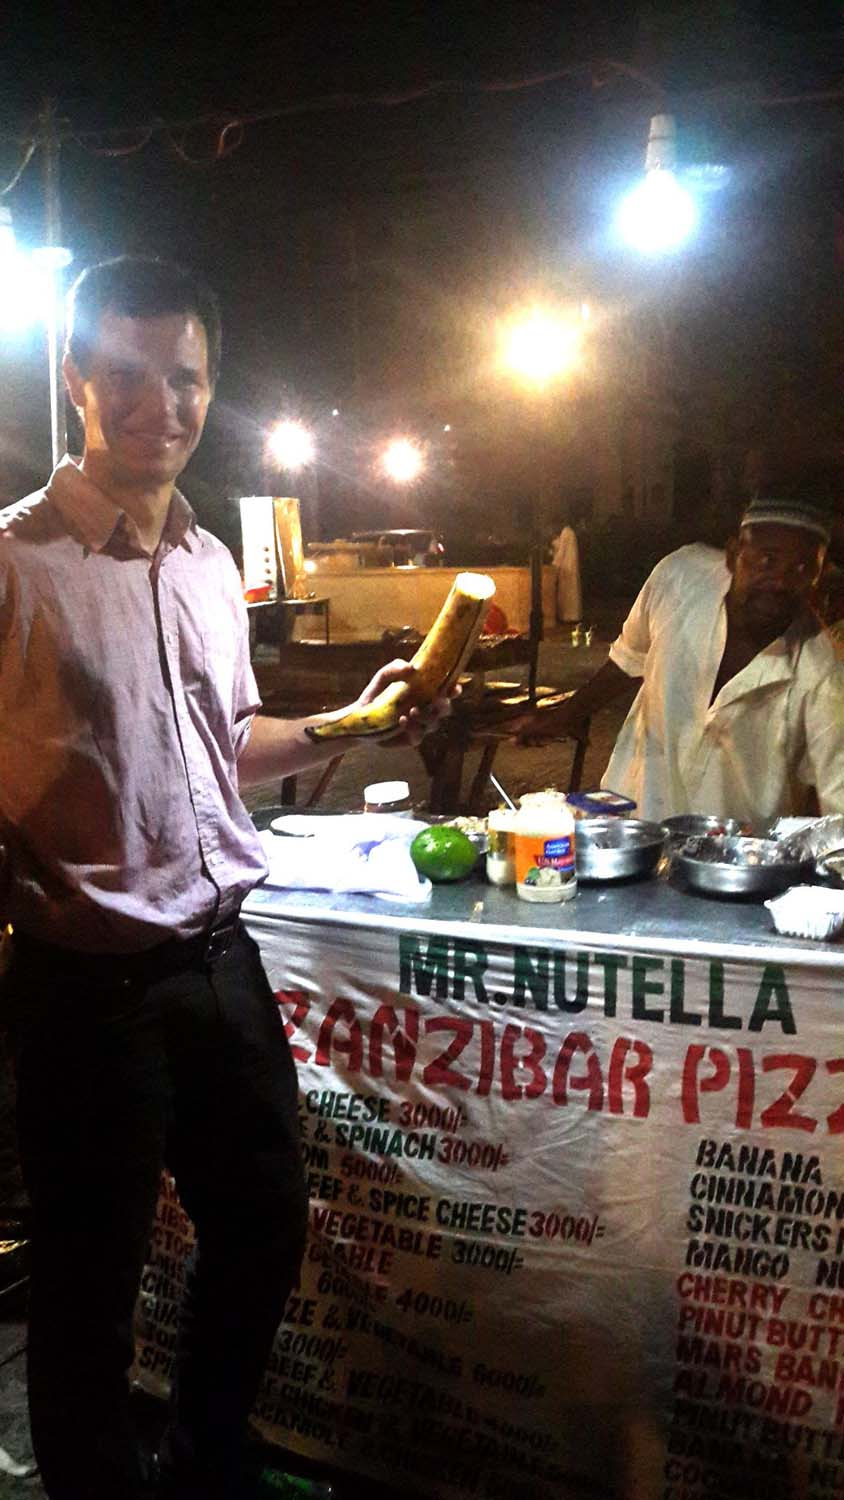 nutella and banana pancake in Stonetown, check out the size of the banana!